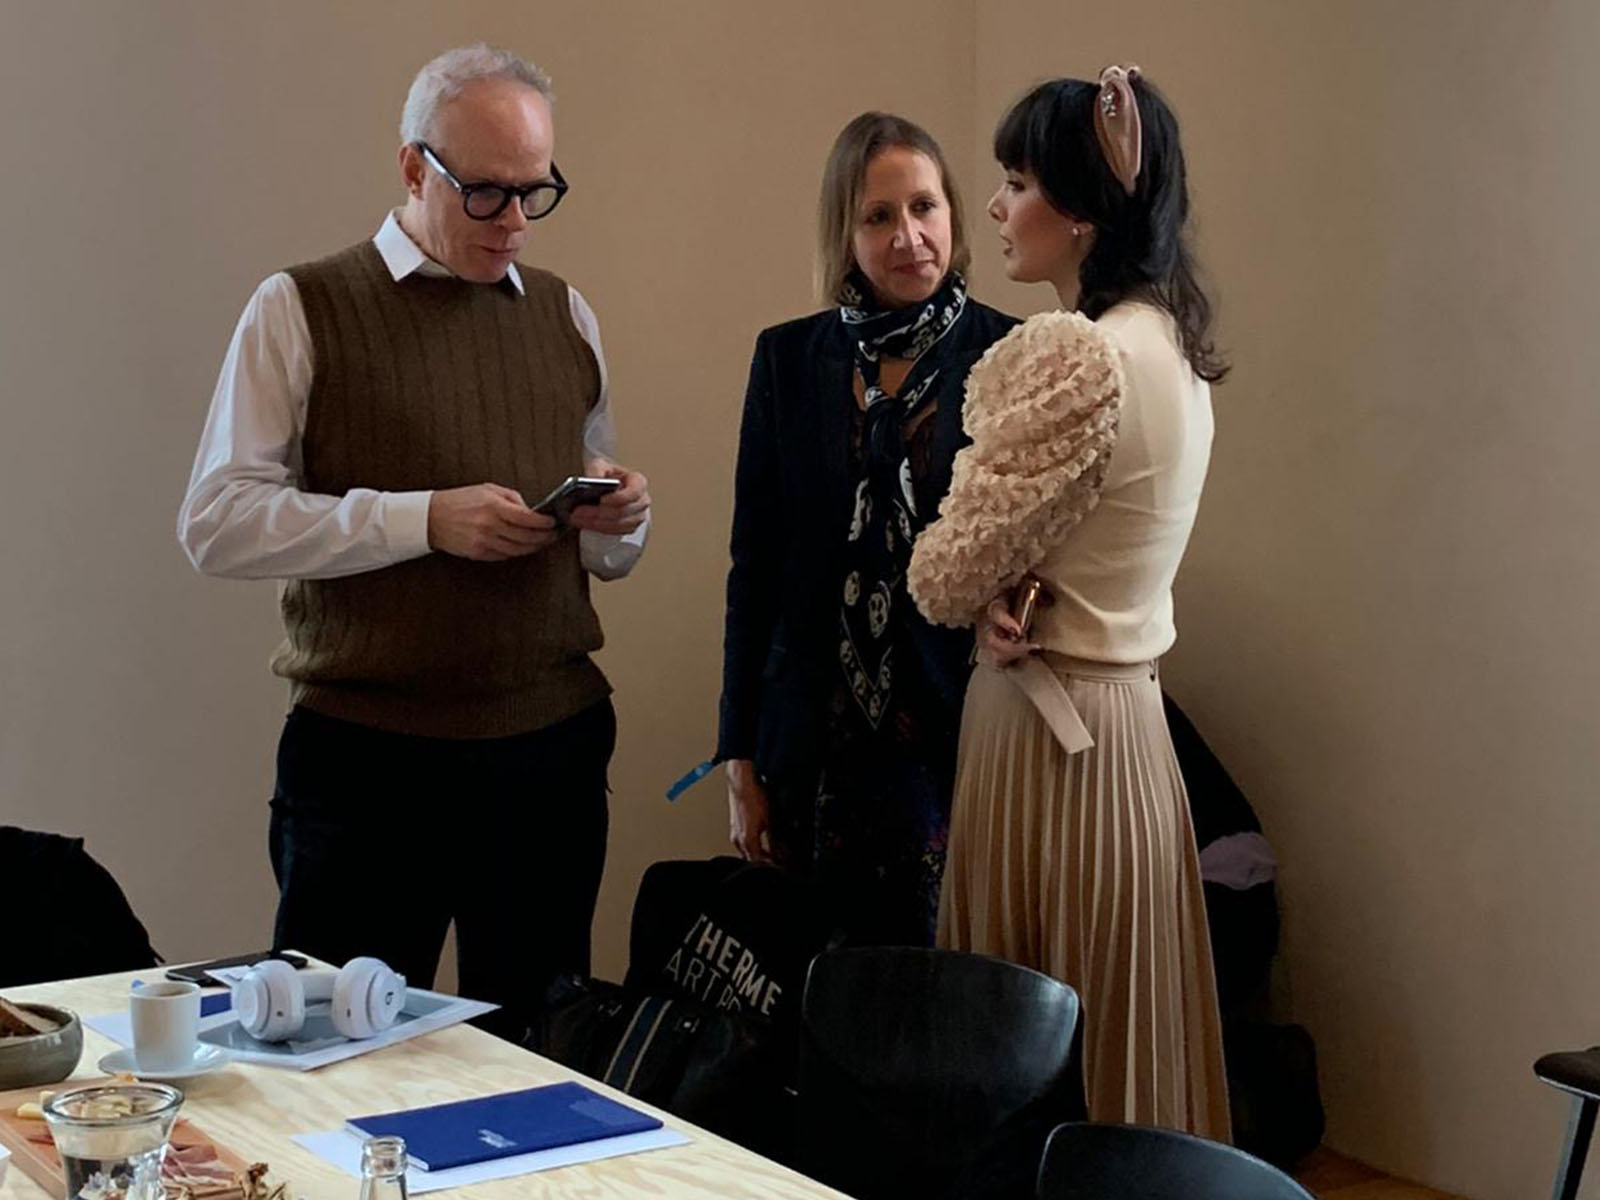 Hans Ulrich Obrist, Claudia Paetzold and Sara Faraj during the Therme Think Tank